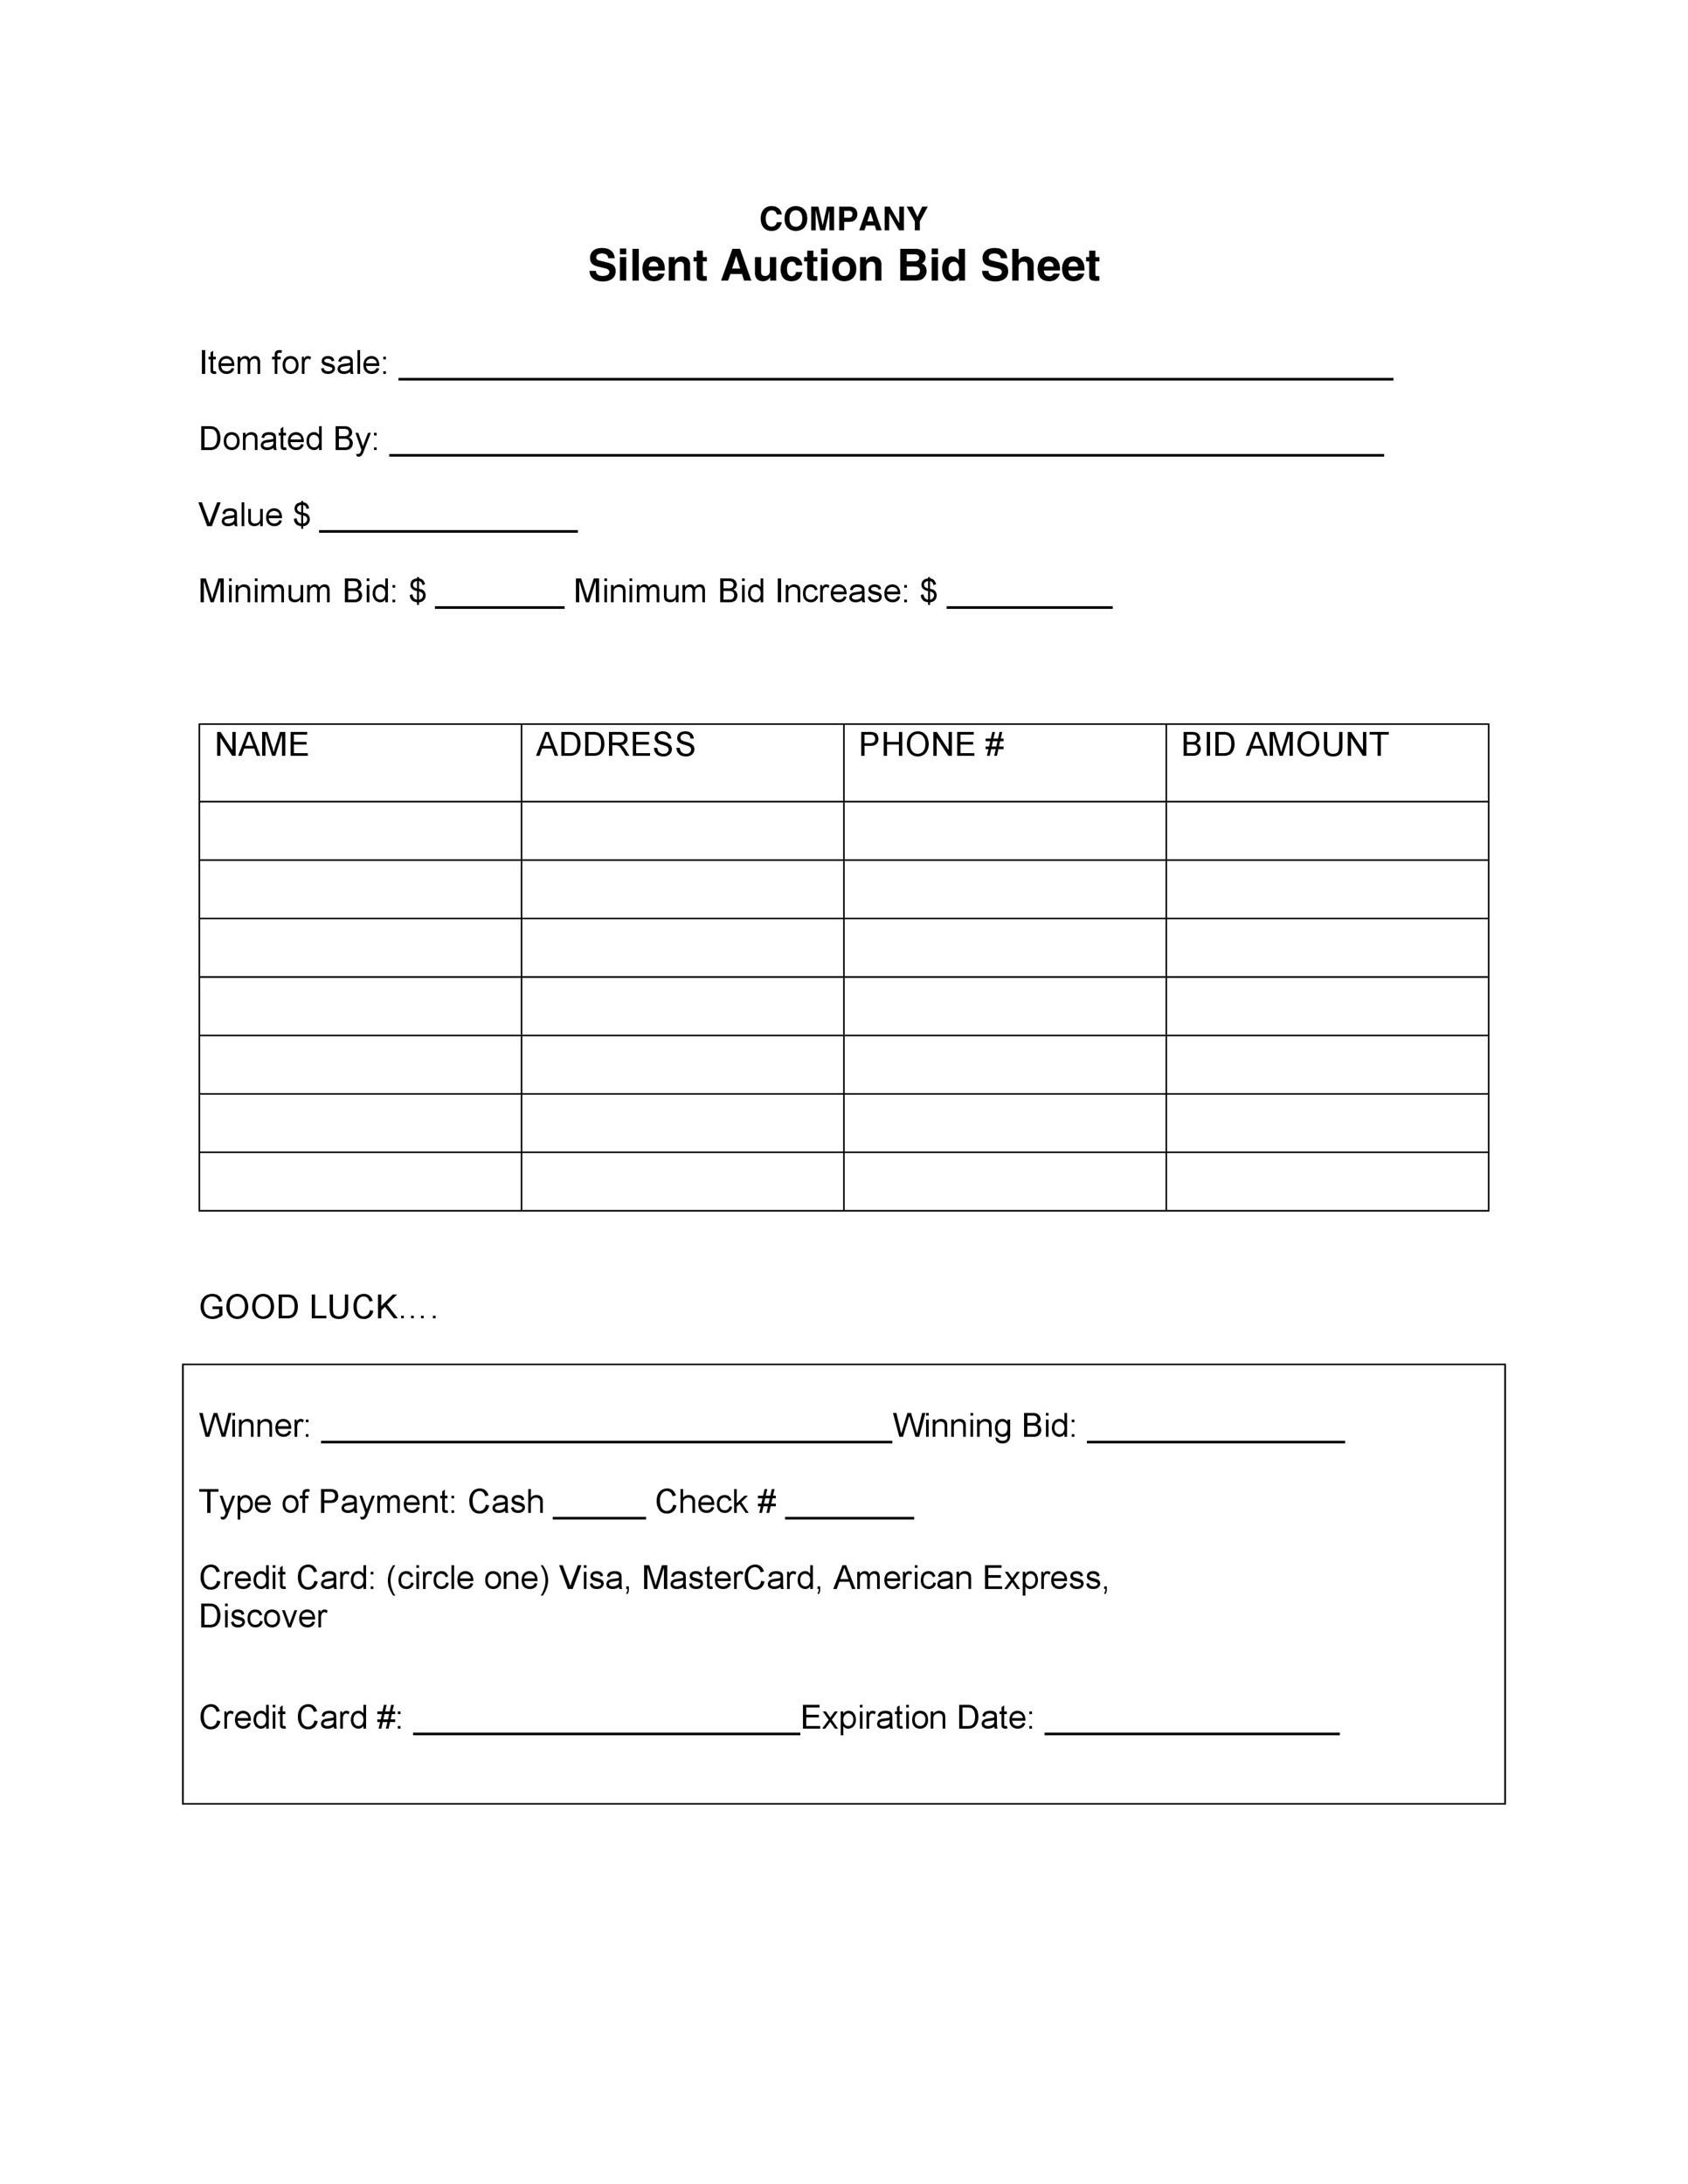 Free Silent Auction Bid Sheet 33